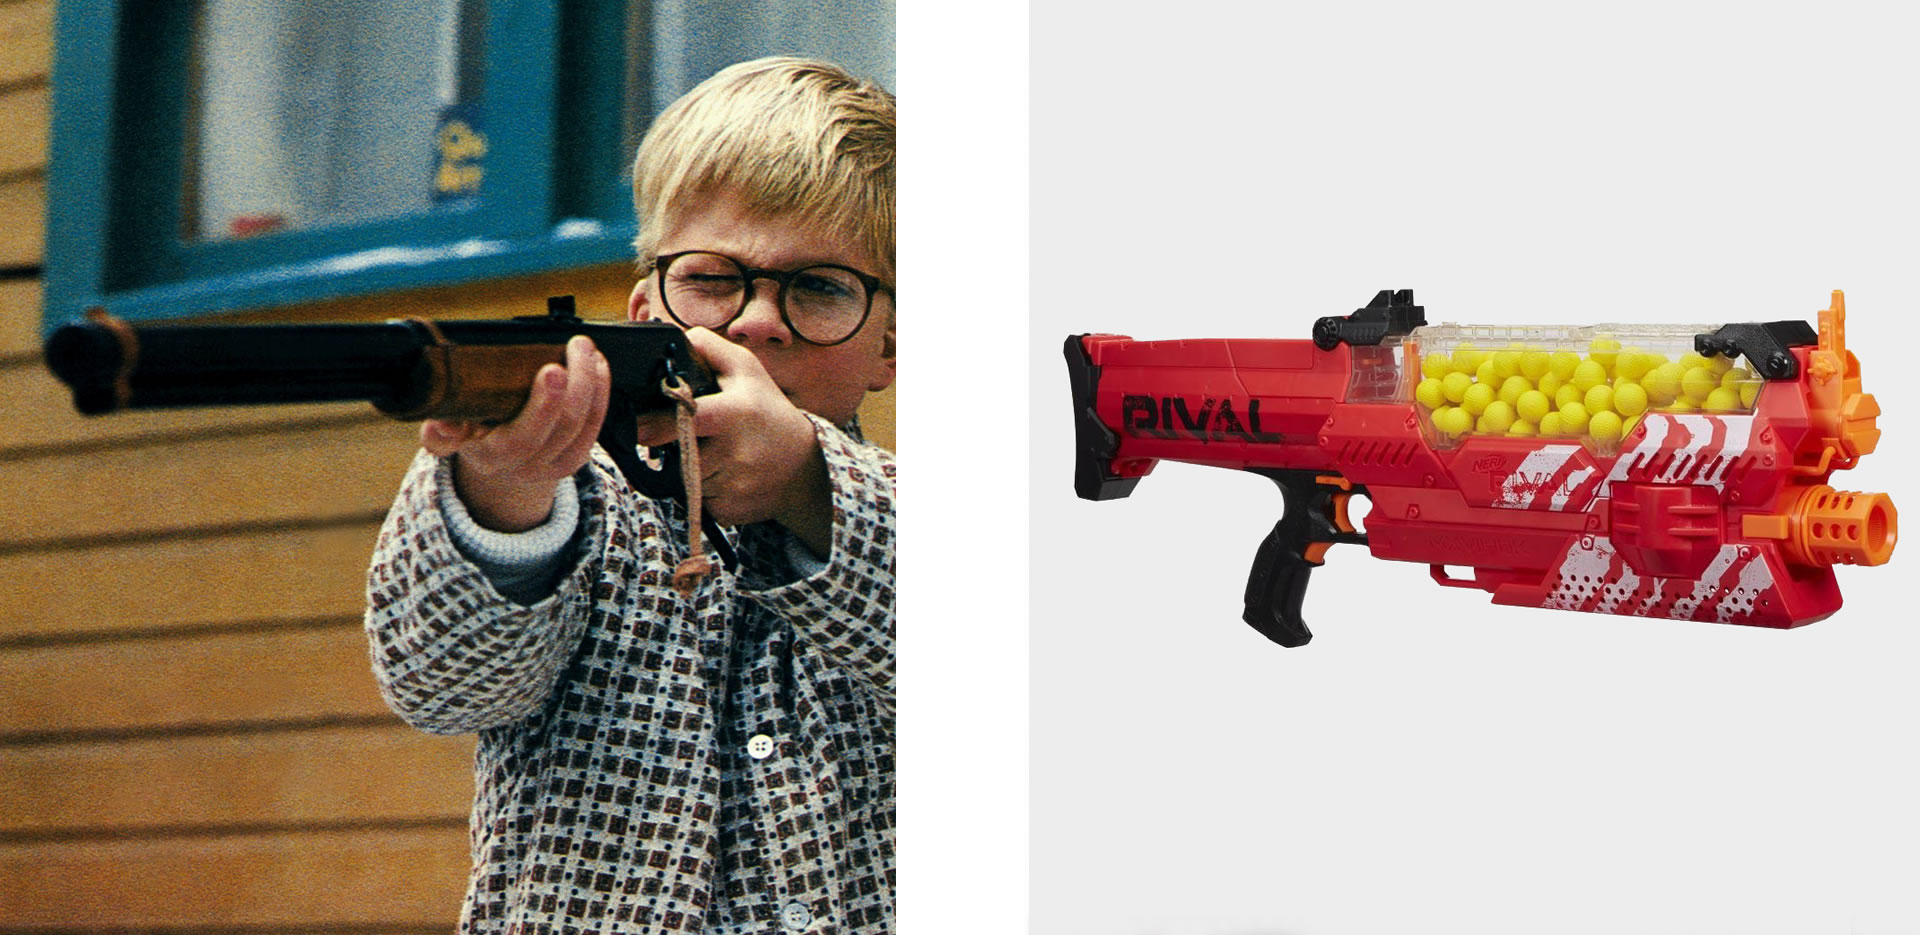 Red Ryder BB gun (Credit: AF Archive/Alamy Stock Photo) and Nerf's Rival Nemesis (Image courtesy of Hasbro)